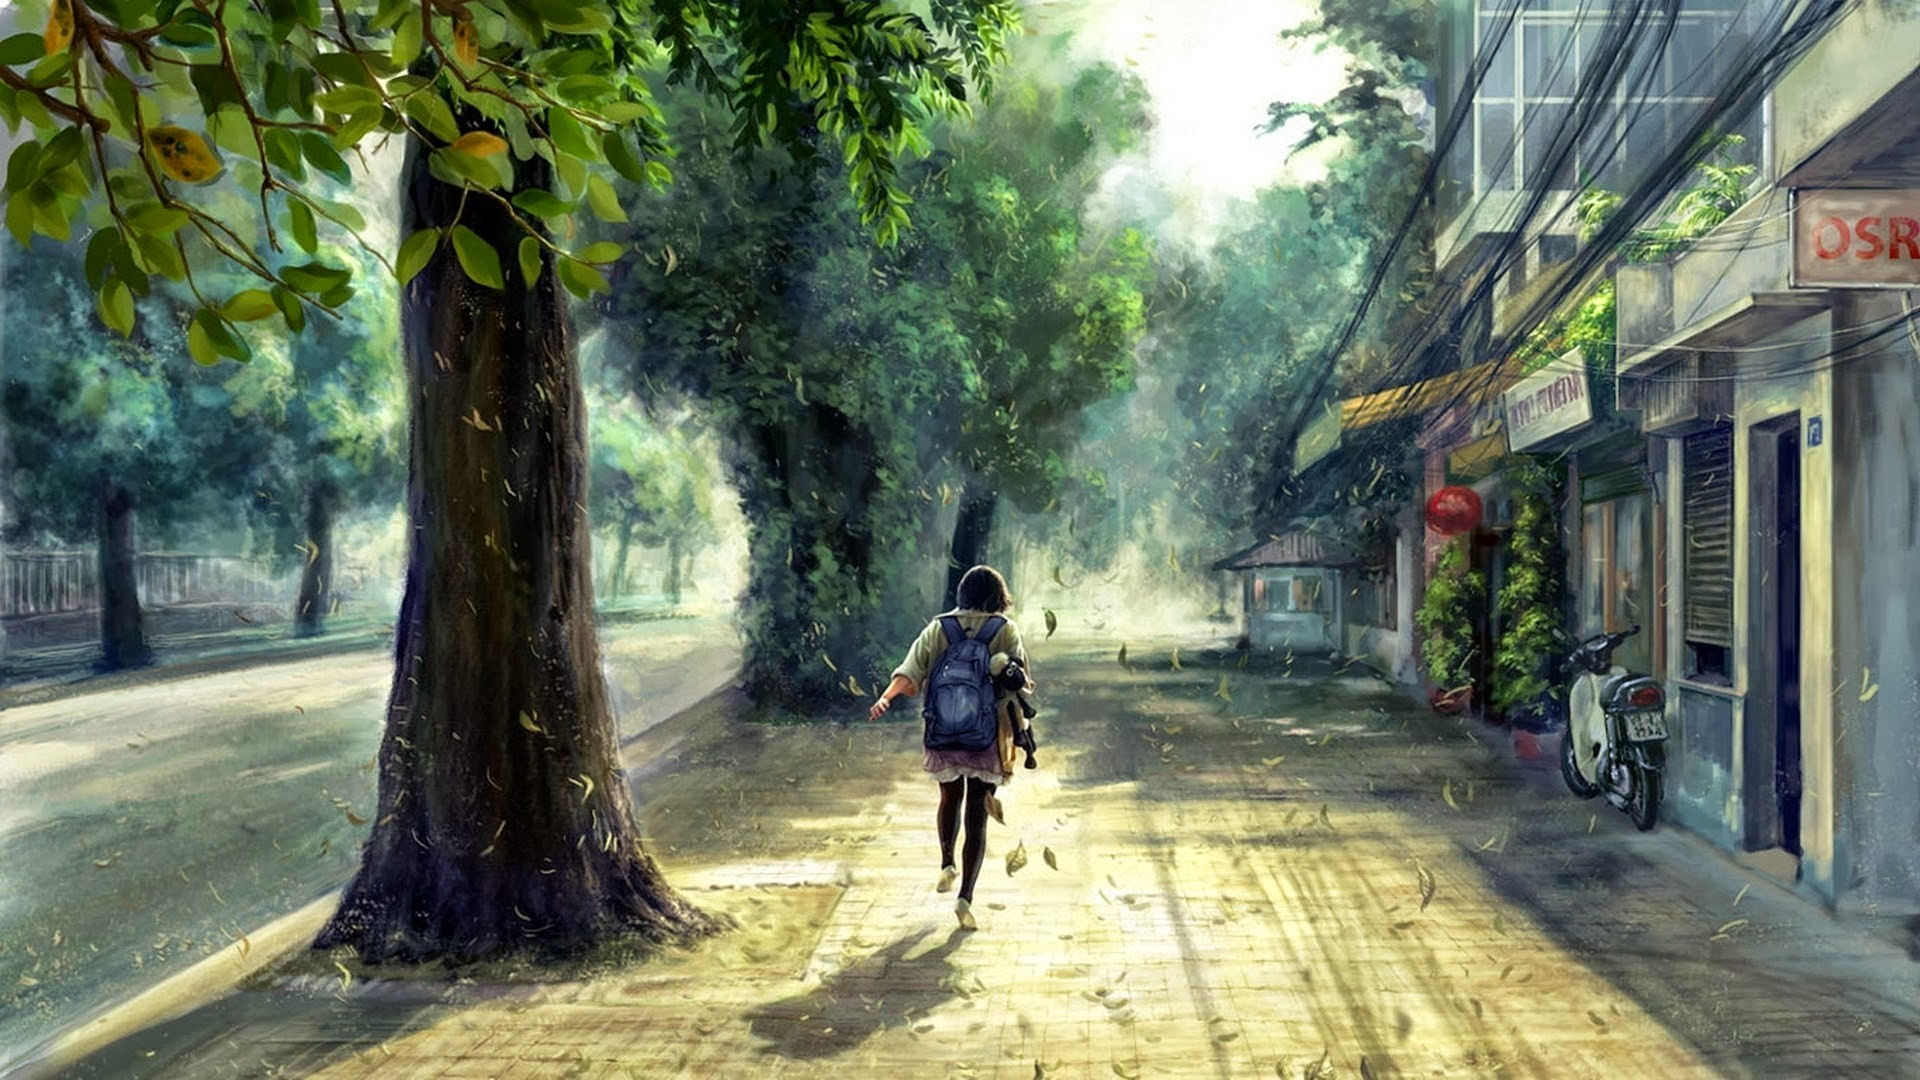 Anime-Scenery-Street-HD-Desktop-wallpaper-wpc5802158